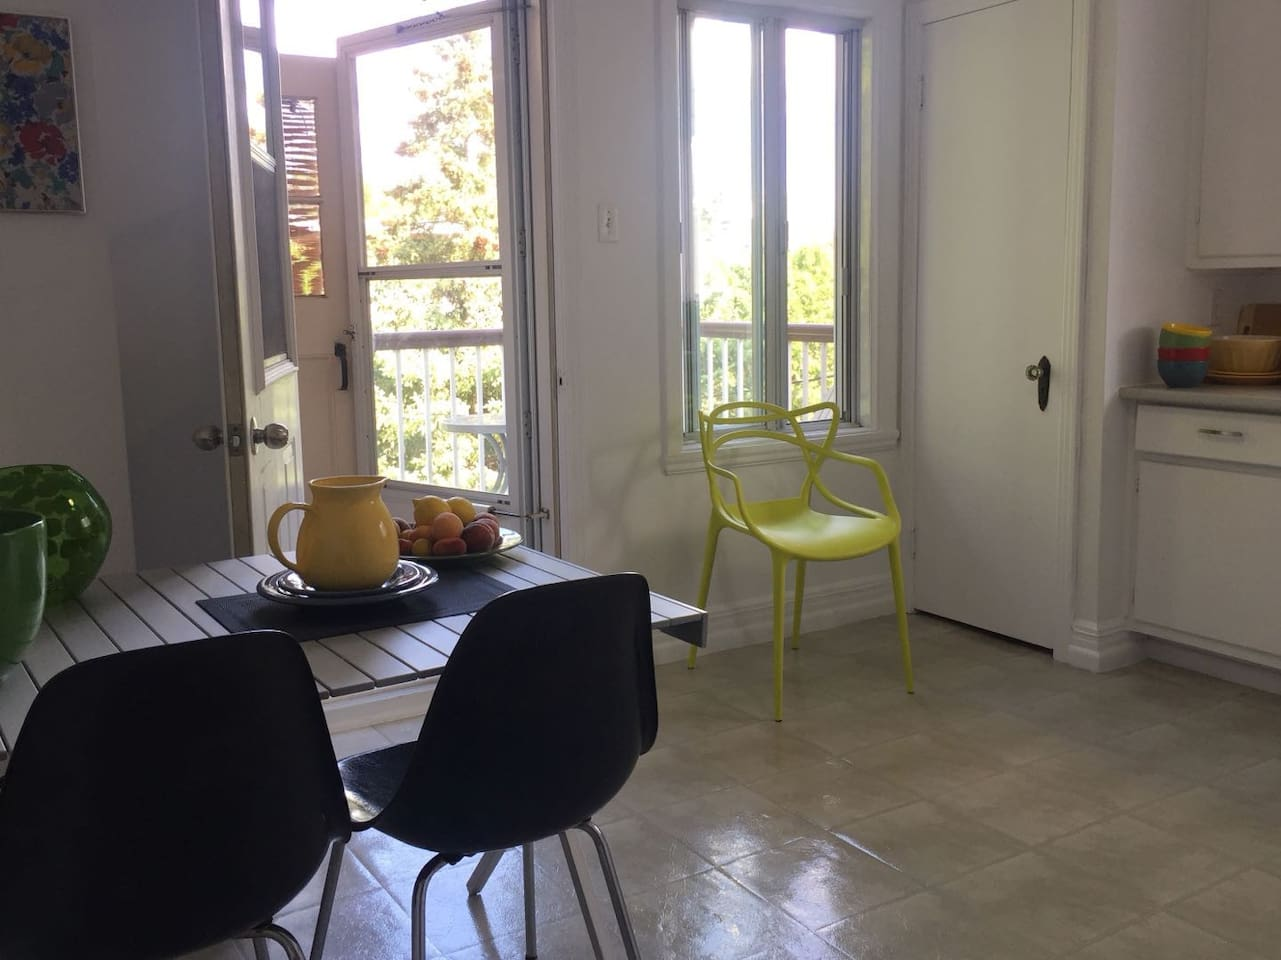 Bright and airy eat-in kitchen with balcony